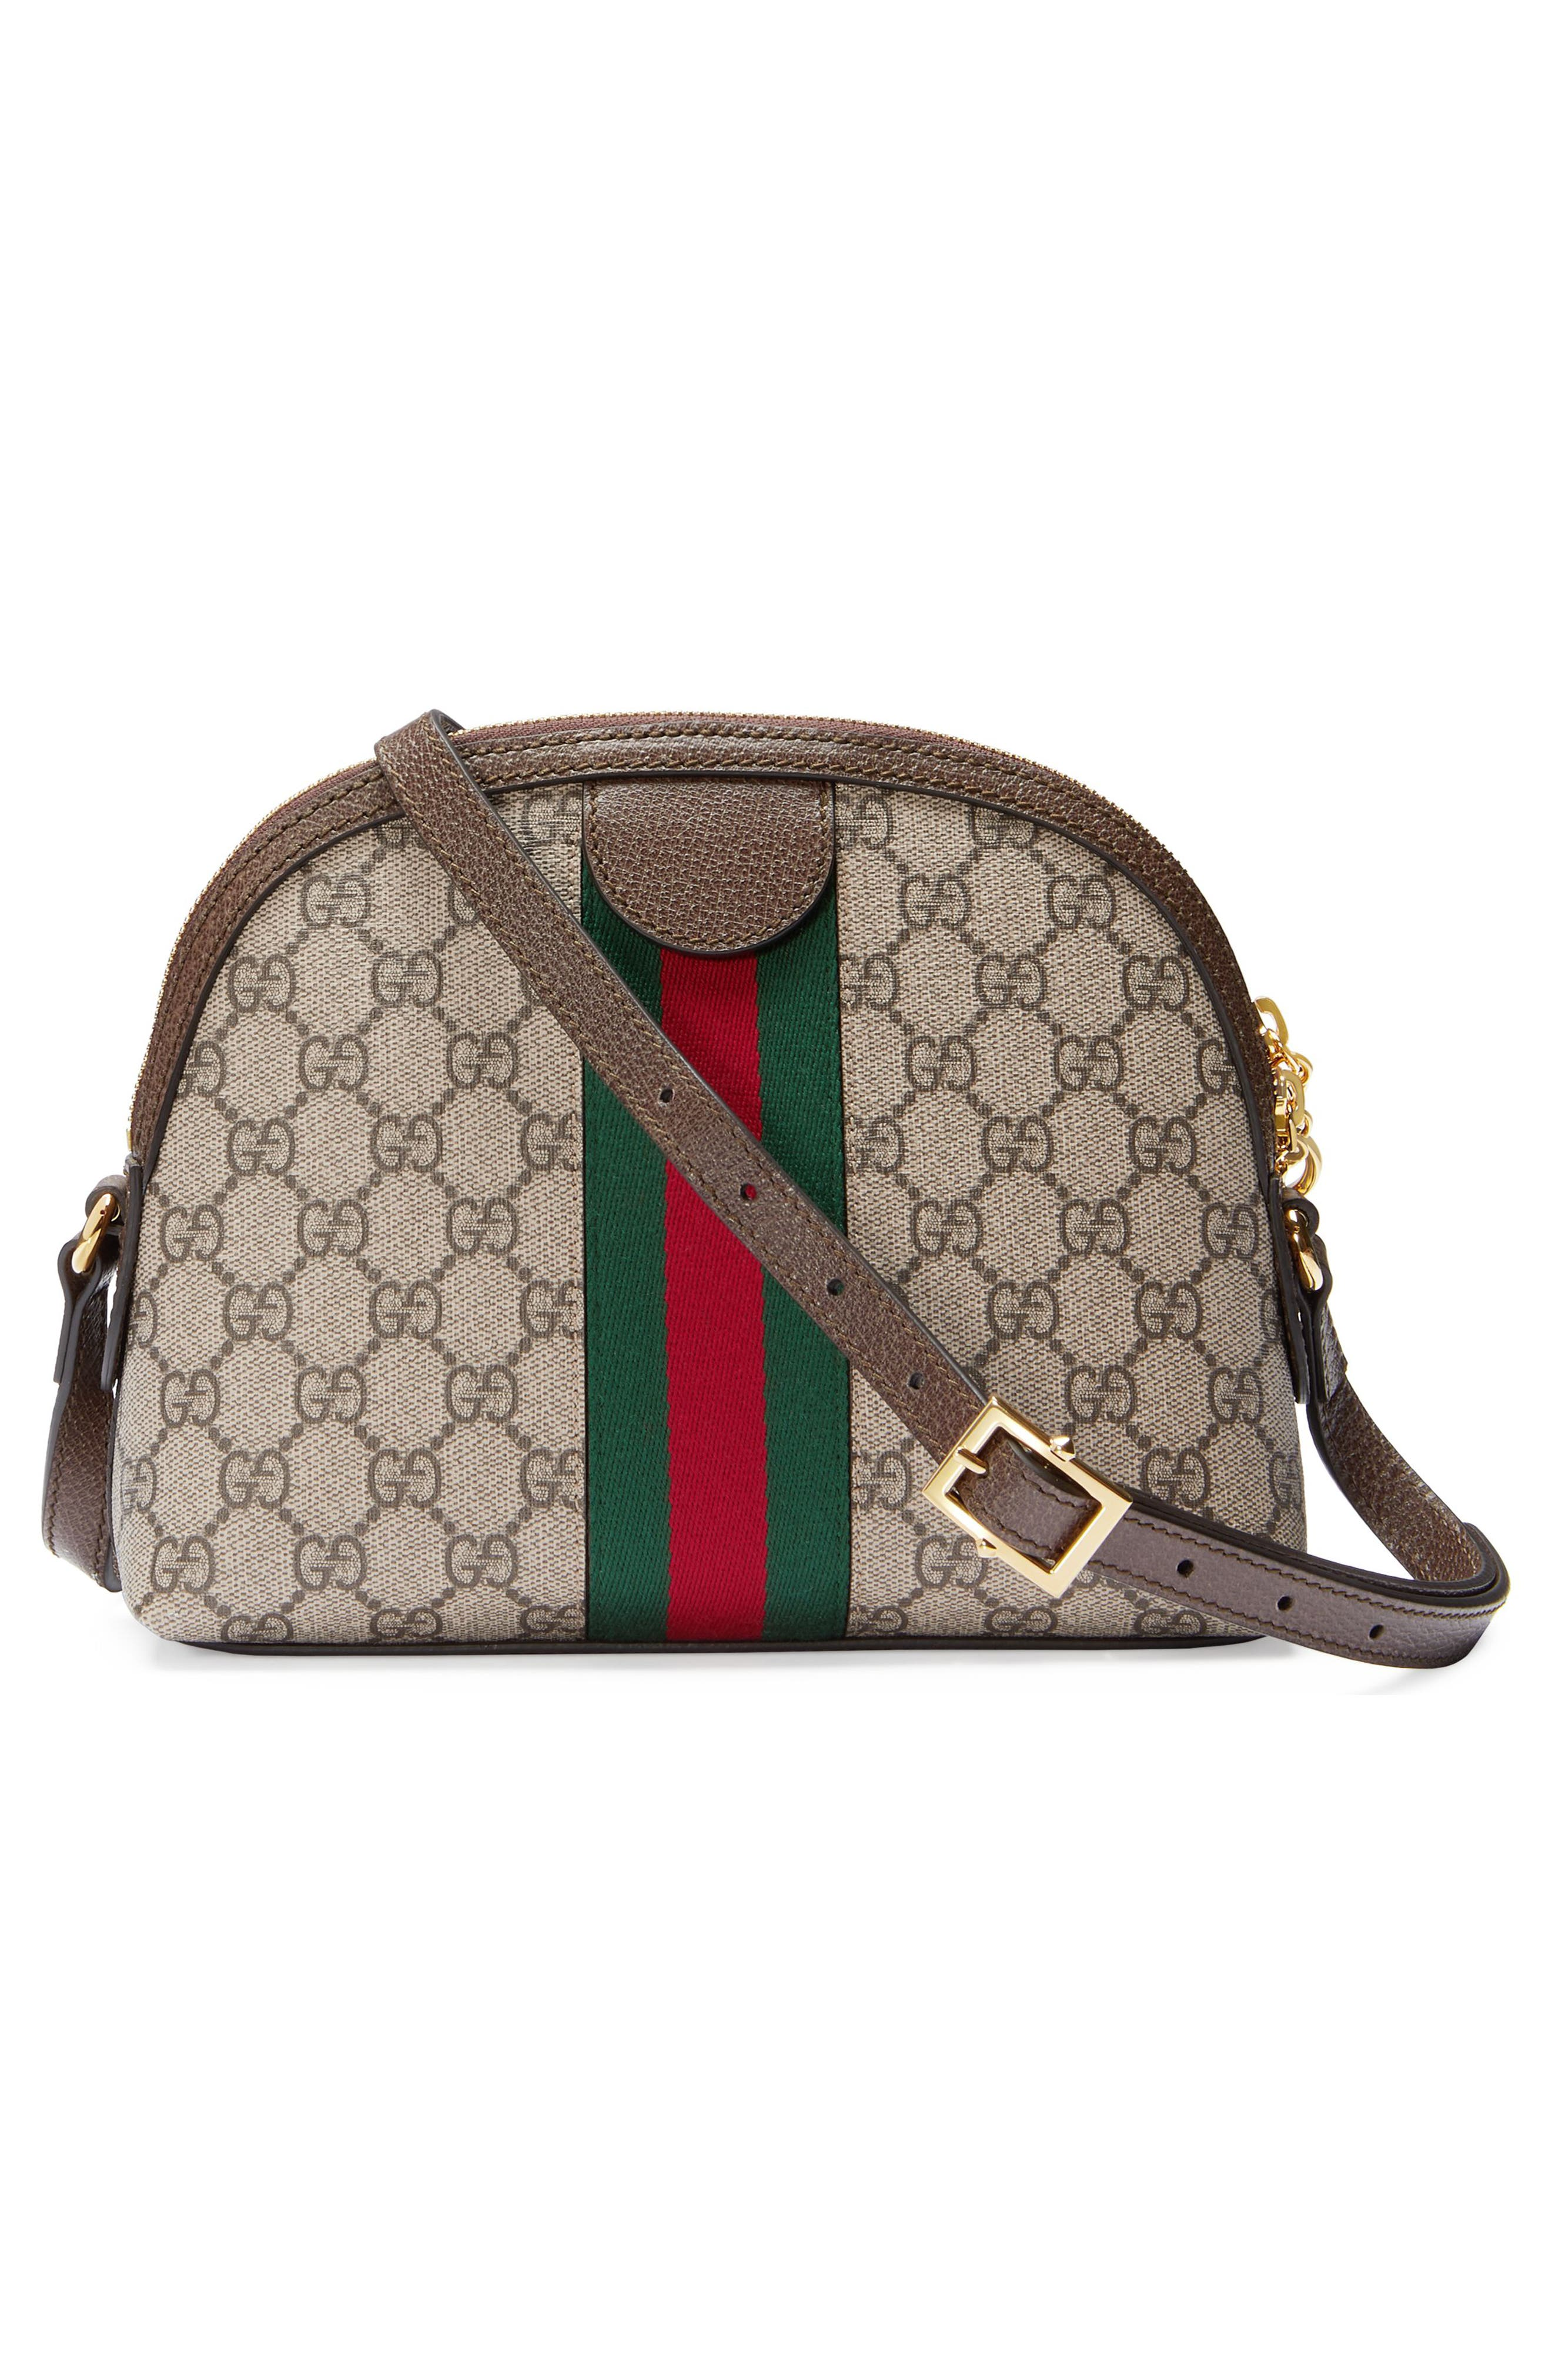 GUCCI, GG Supreme Canvas Shoulder Bag, Alternate thumbnail 3, color, BEIGE EBONY/ NERO/ RED